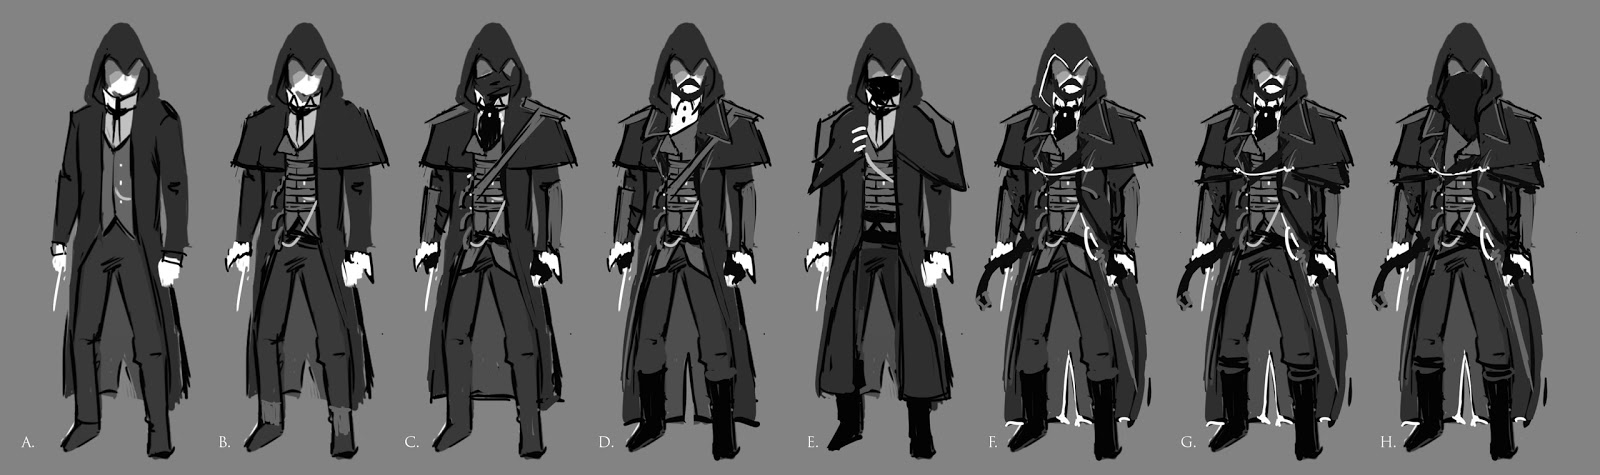 David Paget Ma Concept Art Jack Couvela Brief Assassin S Creed